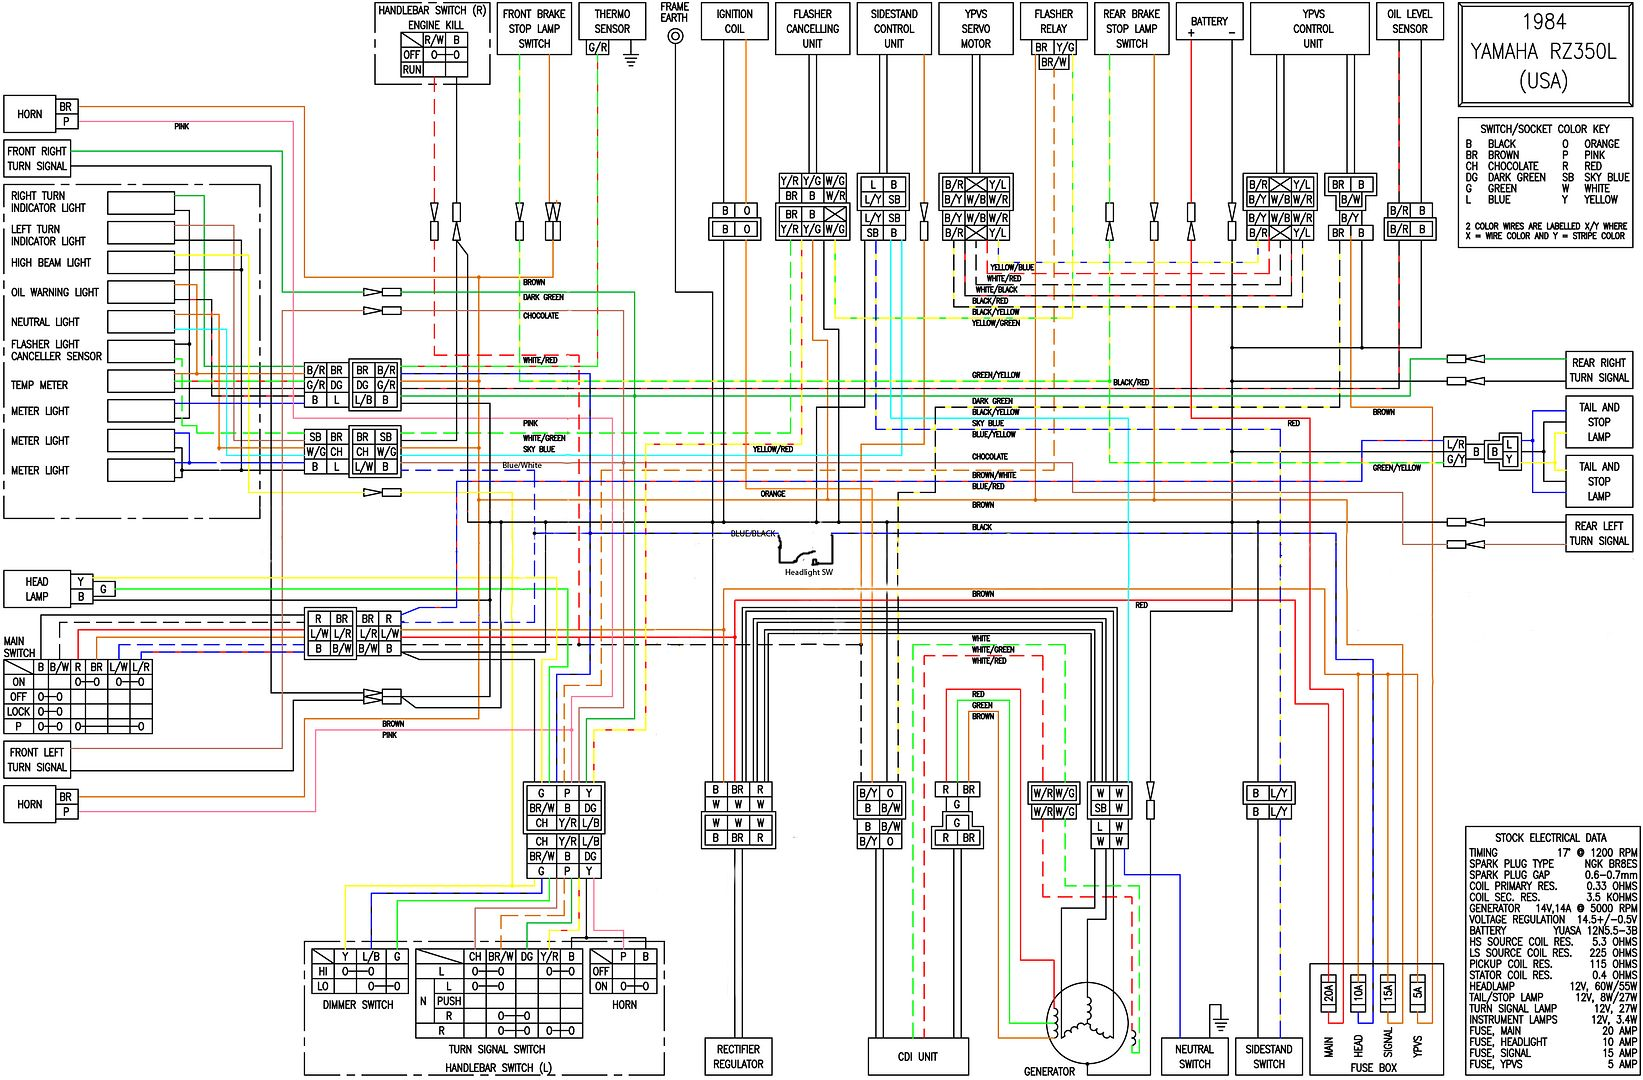 yamaha rd 350 wiring diagram  wiring diagram loaddirecta